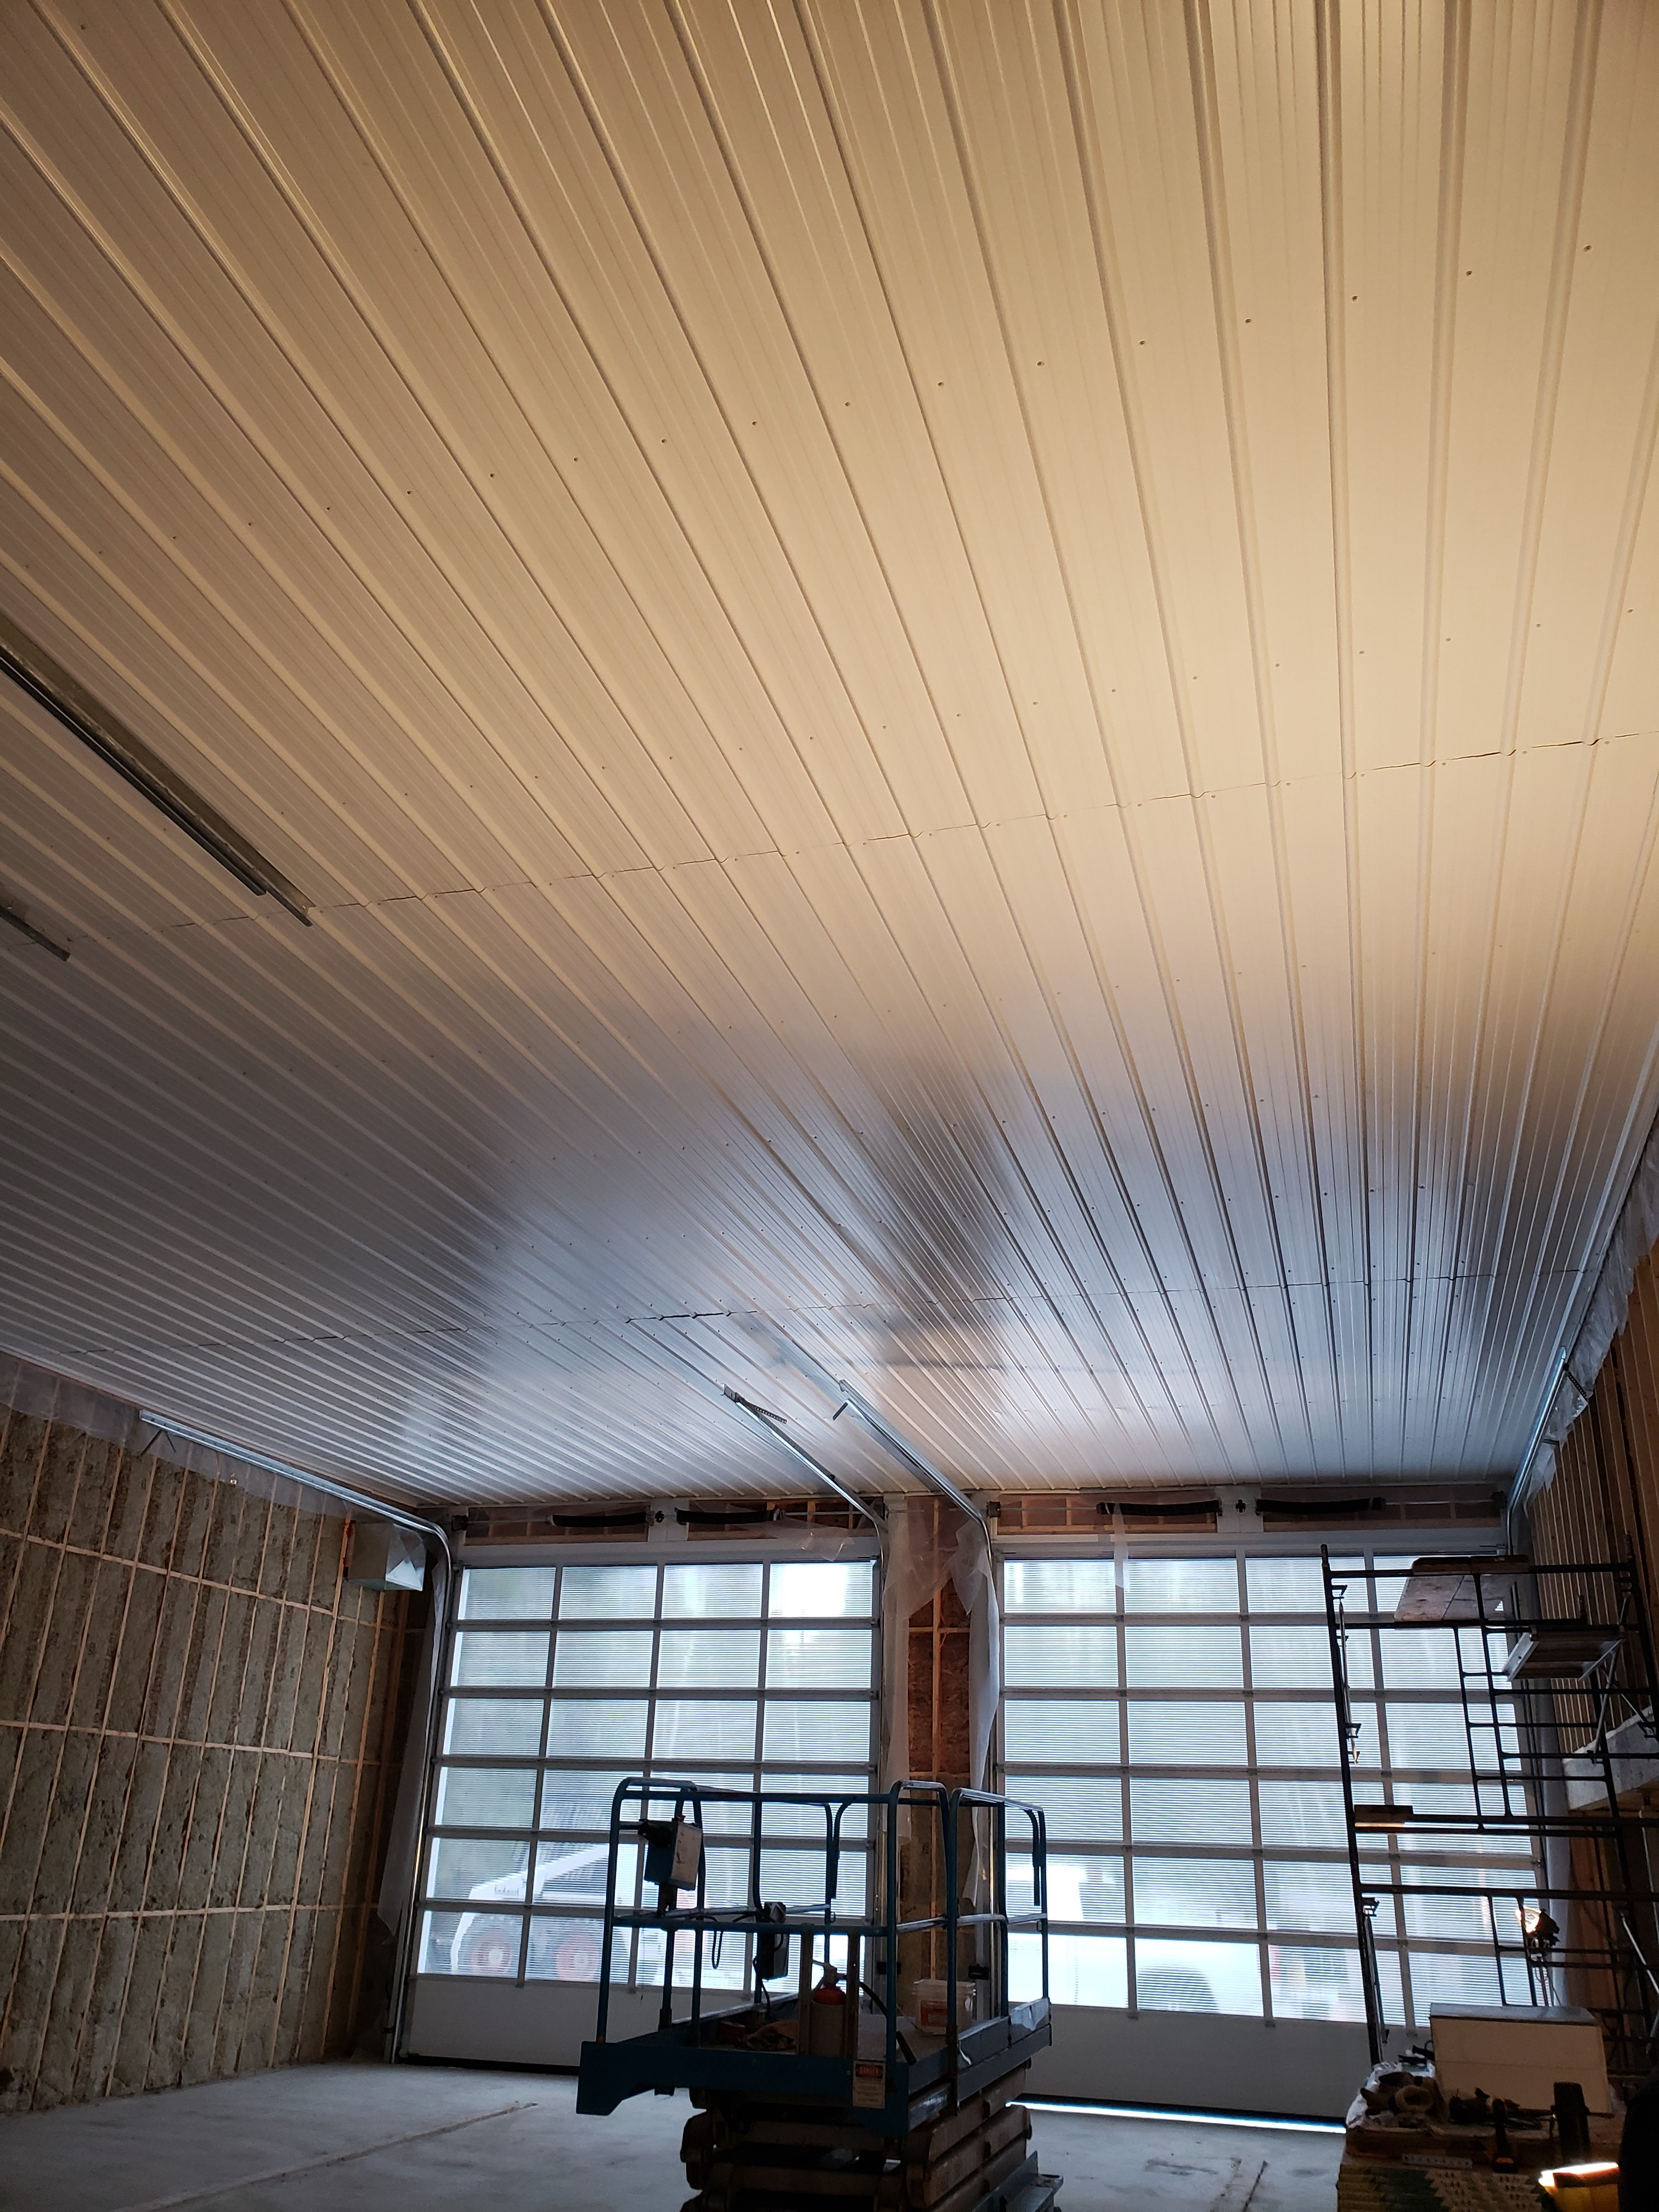 Groomer shed ceiling pic 2